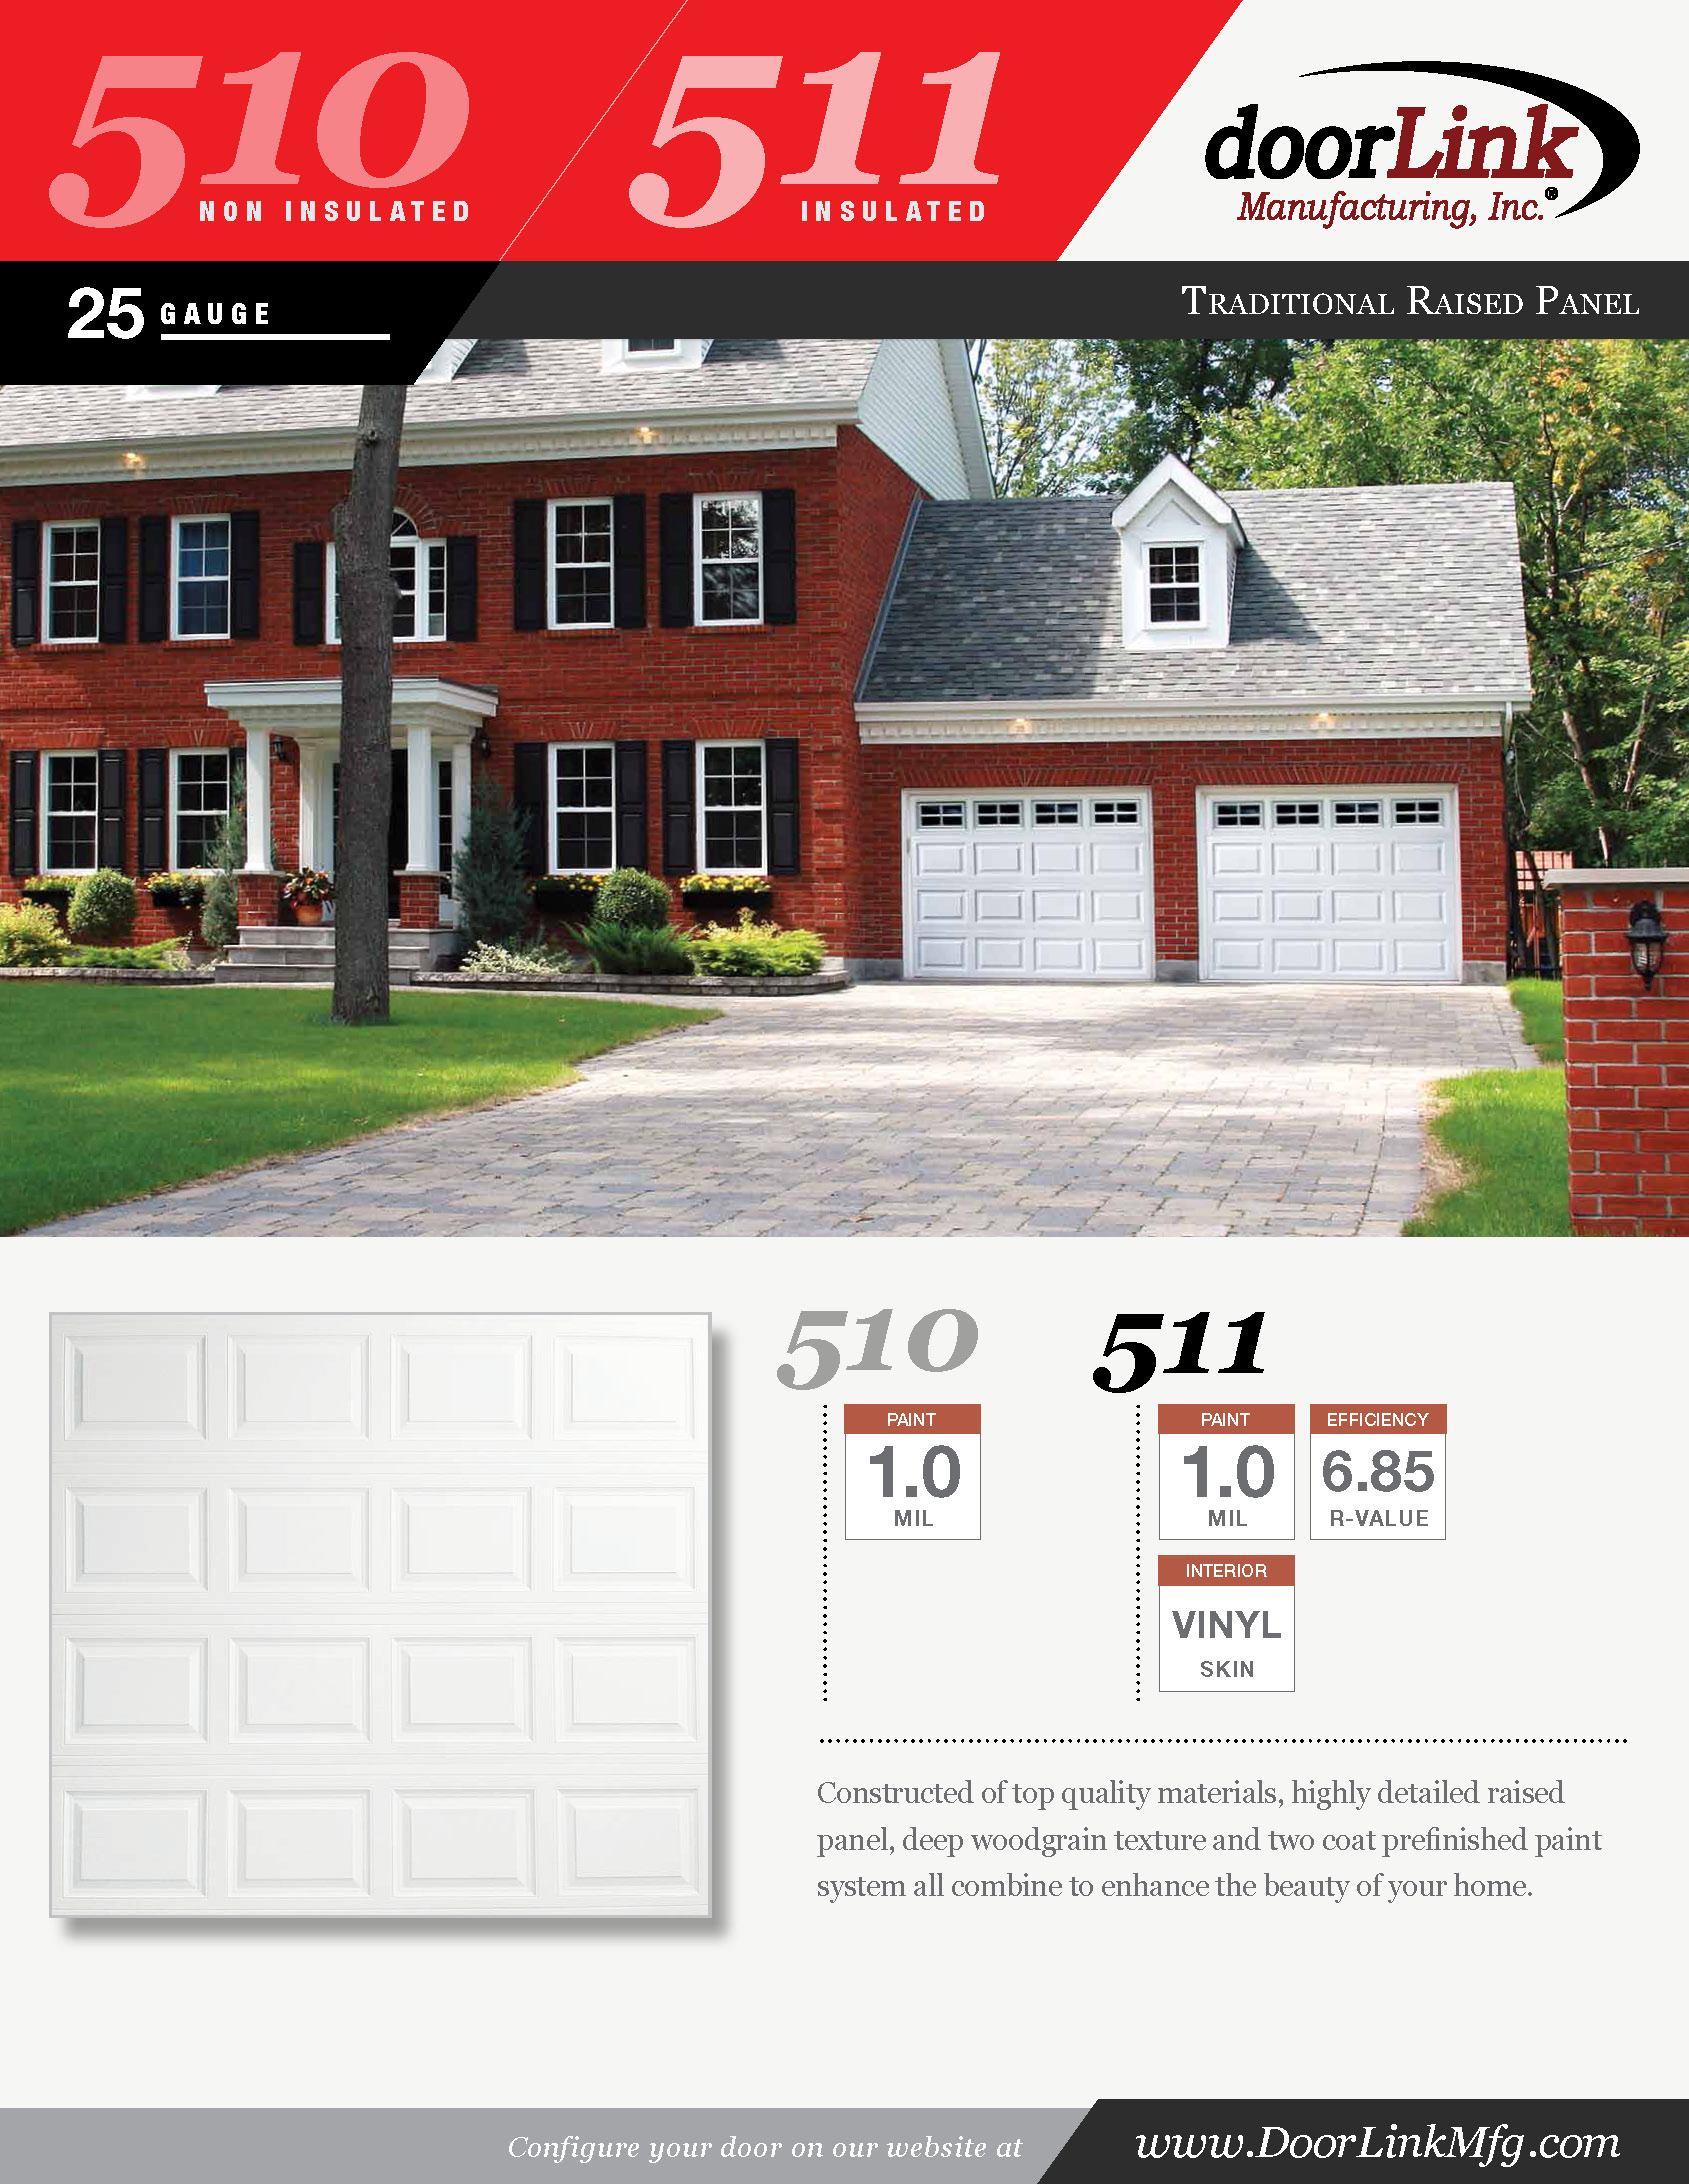 Doorlink-Brochure-510-511 jun2 2016_Page_1